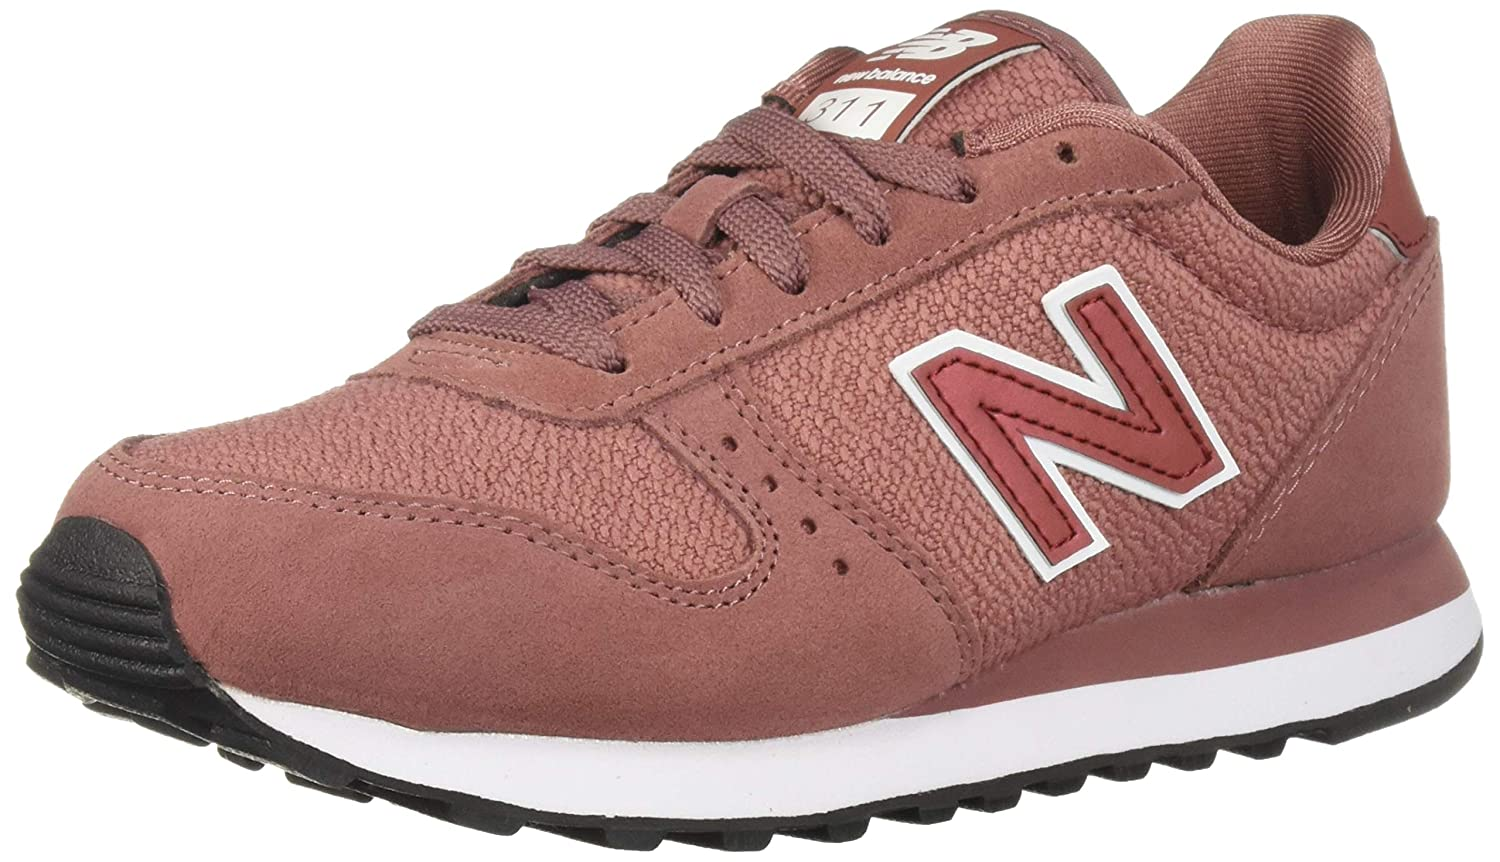 40162698f081e New Balance Women's 311v1 Sneaker Dark Oxide/White 5 D US